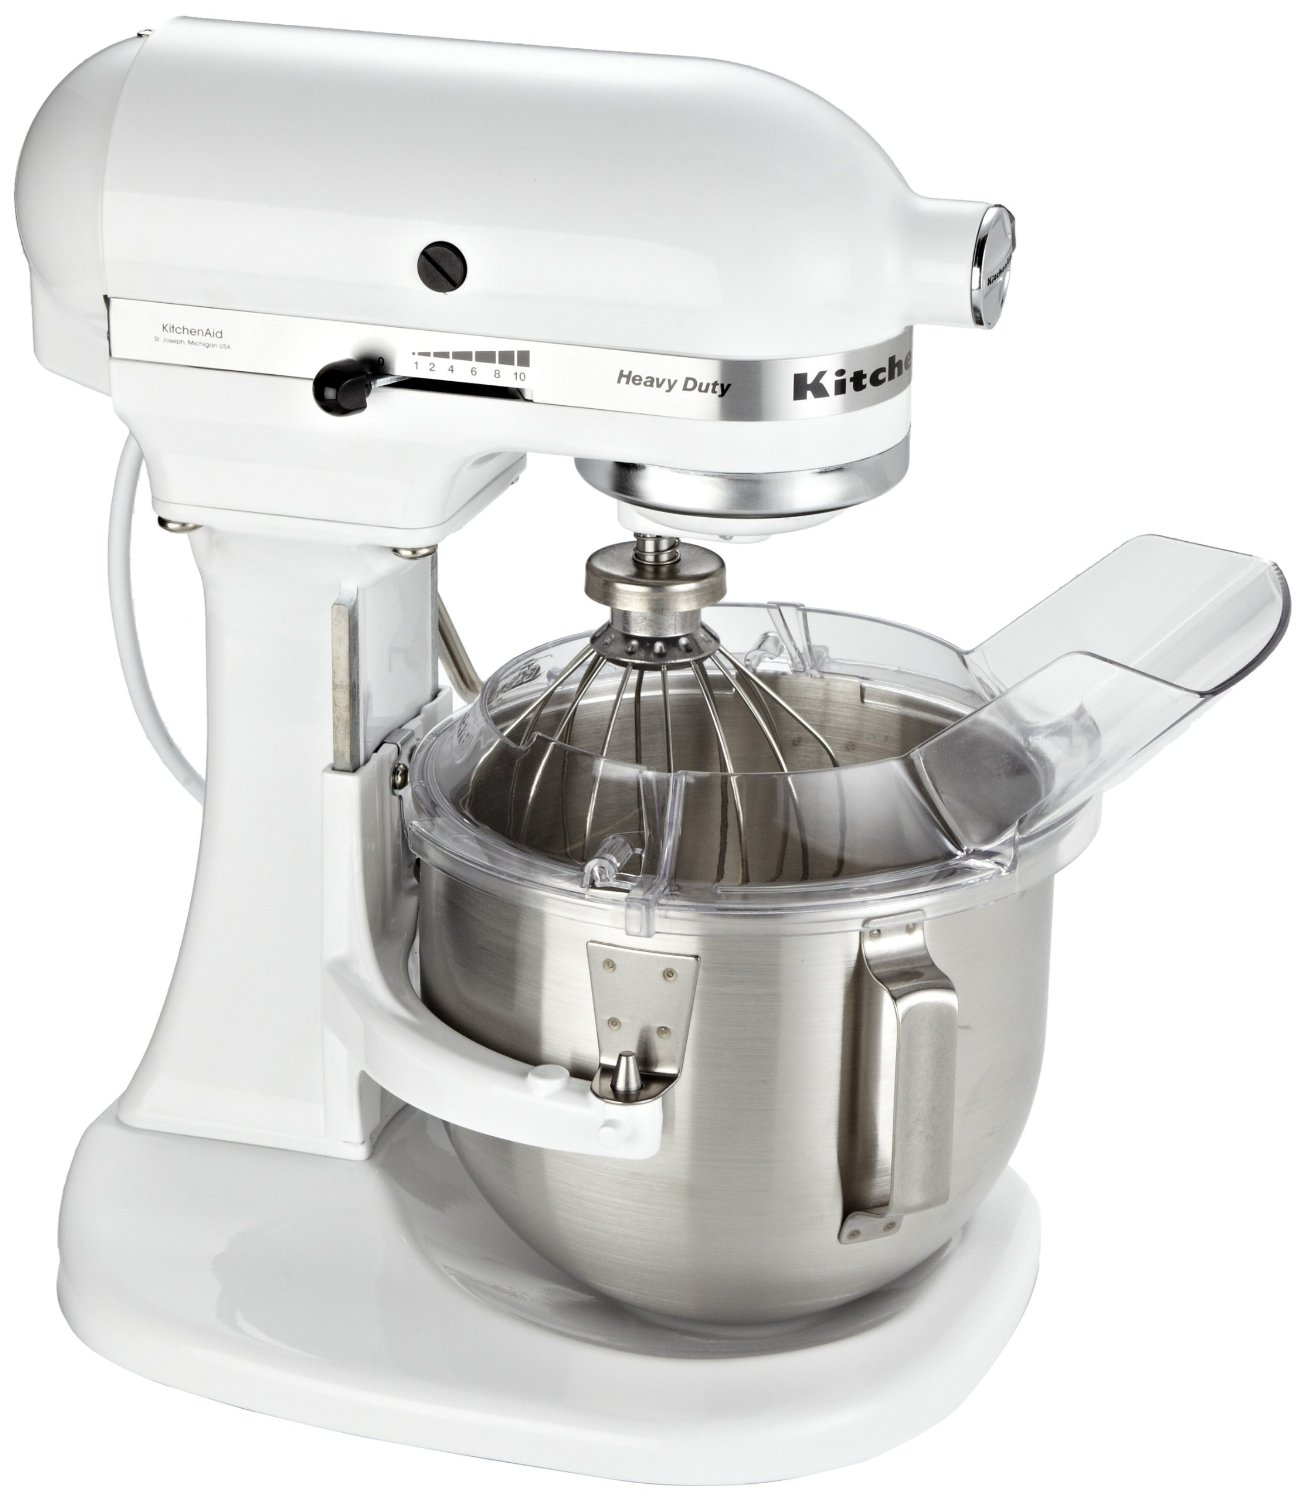 Kitchenaid robot Heavy Duty 5KPM5 biely